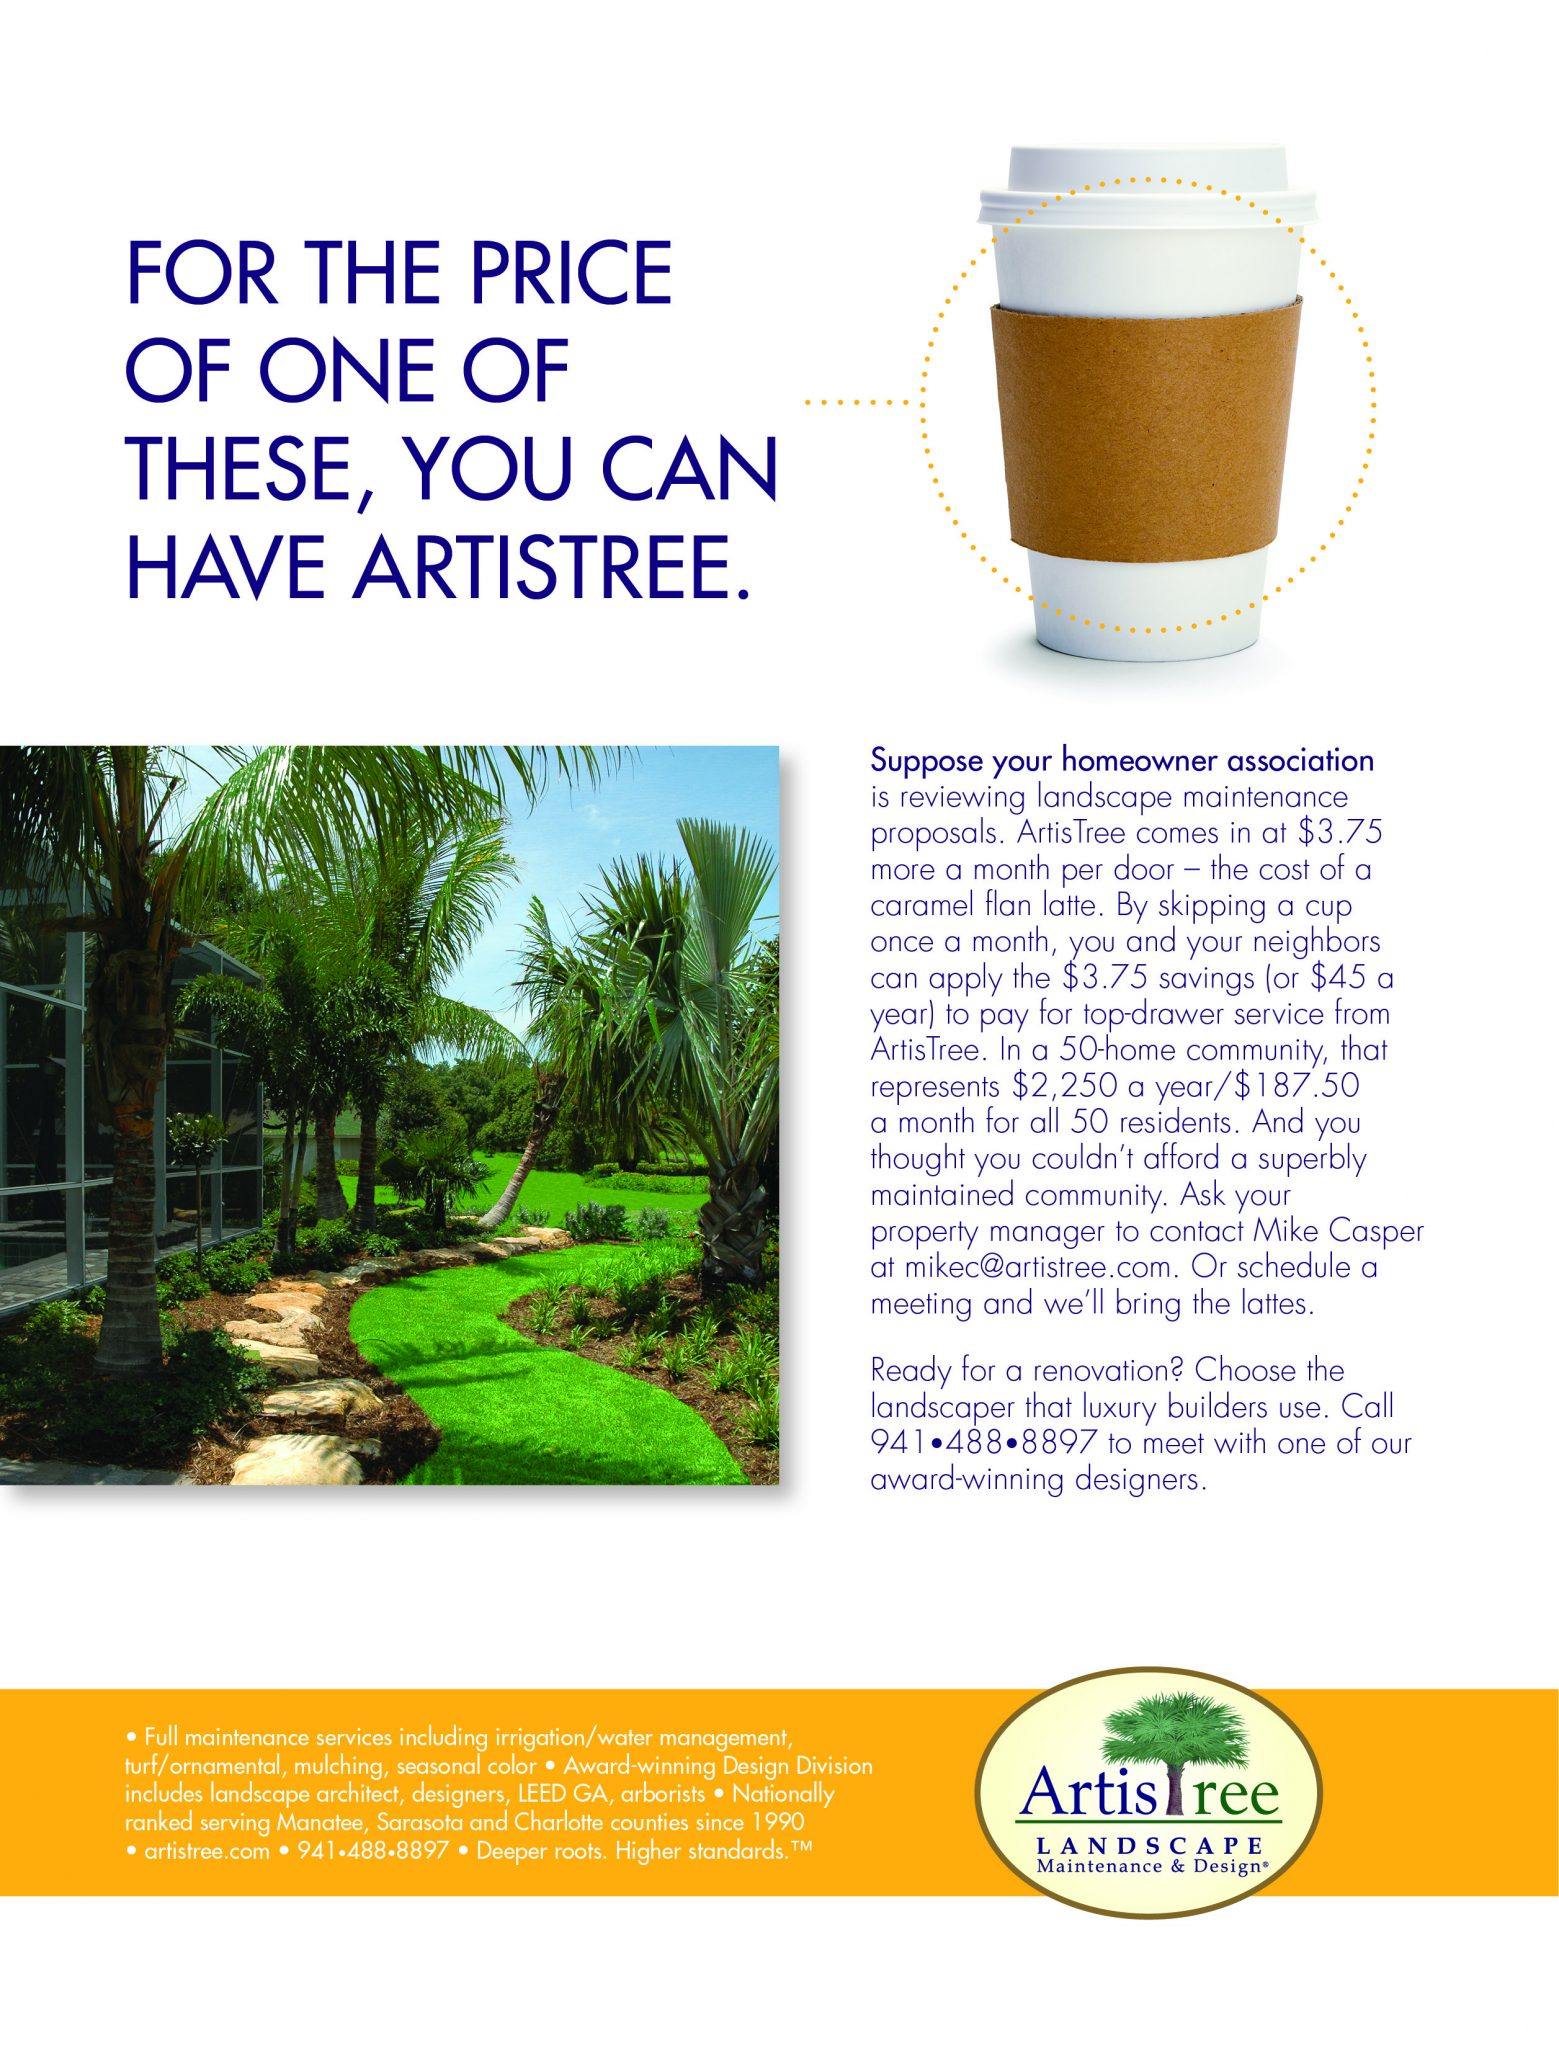 A Well Maintained Landscape Can Be Yours By Skipping A Cup Of Coffee